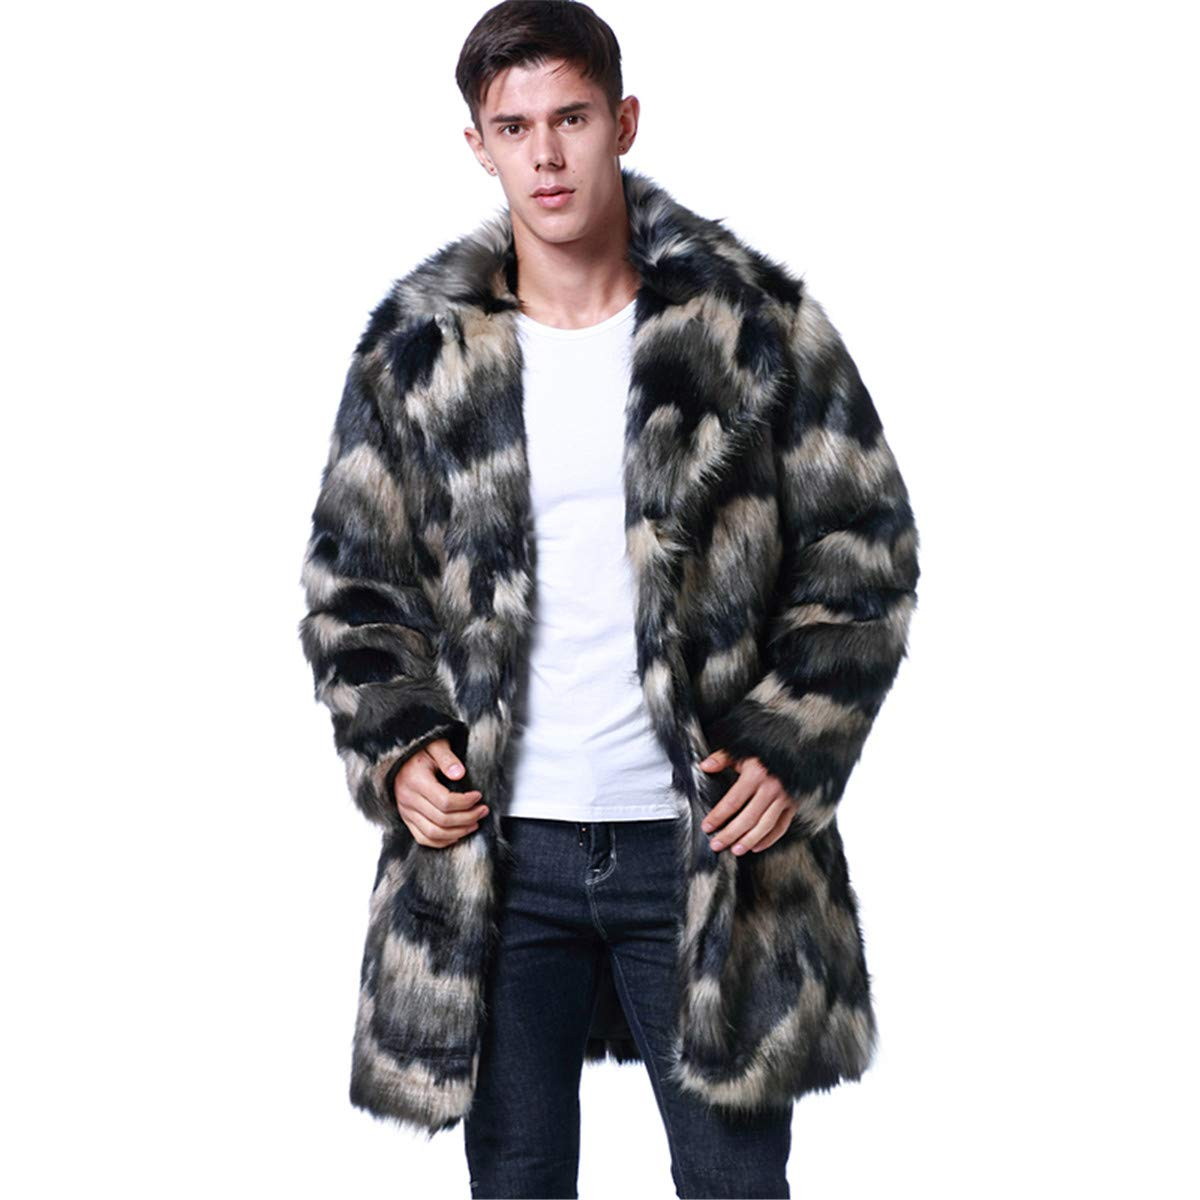 Leepus Men Faux Fur Long Coat Jacket Notched Collar Long Sleeves Contrast Color Furry Vintage Casual Overcoat Outwear Grey by Leepus